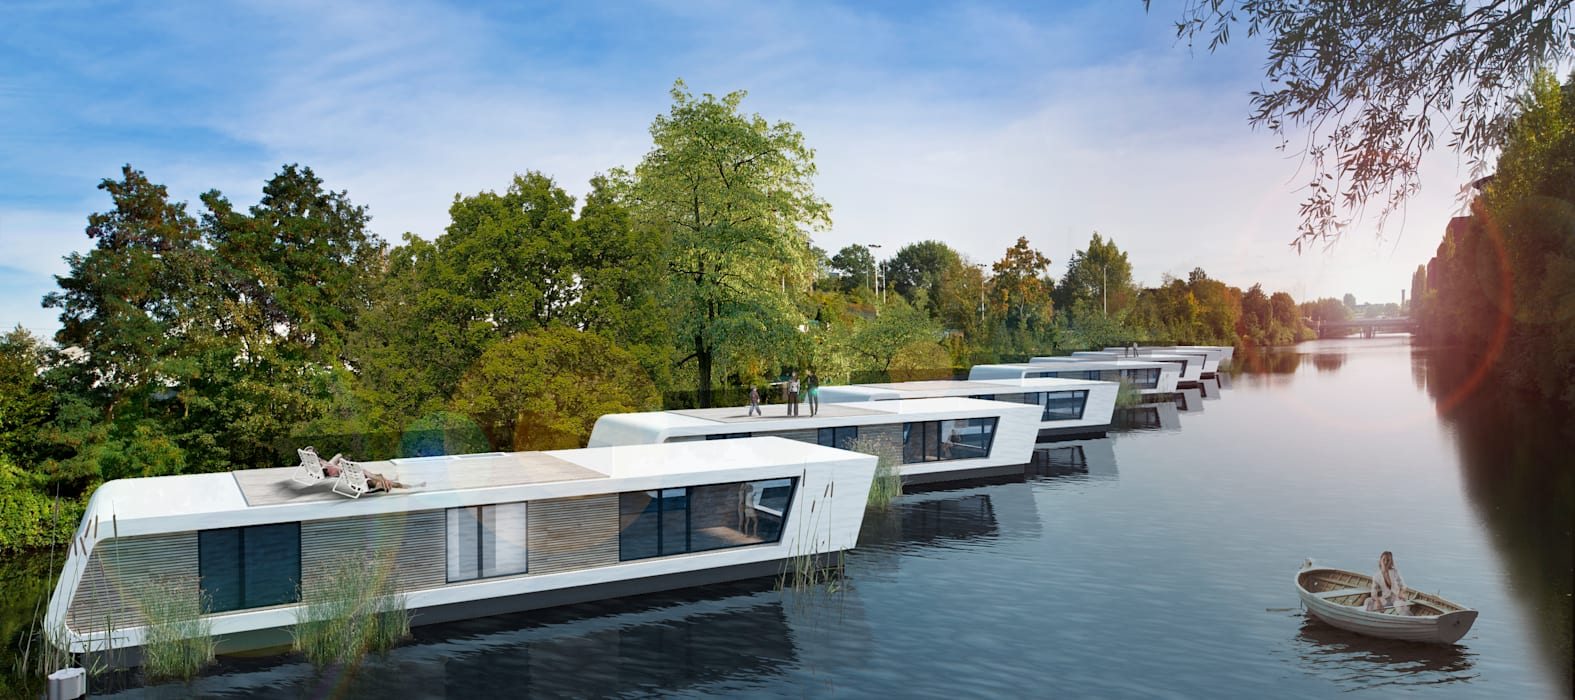 Floating Homes:   von Floating Homes GmbH,